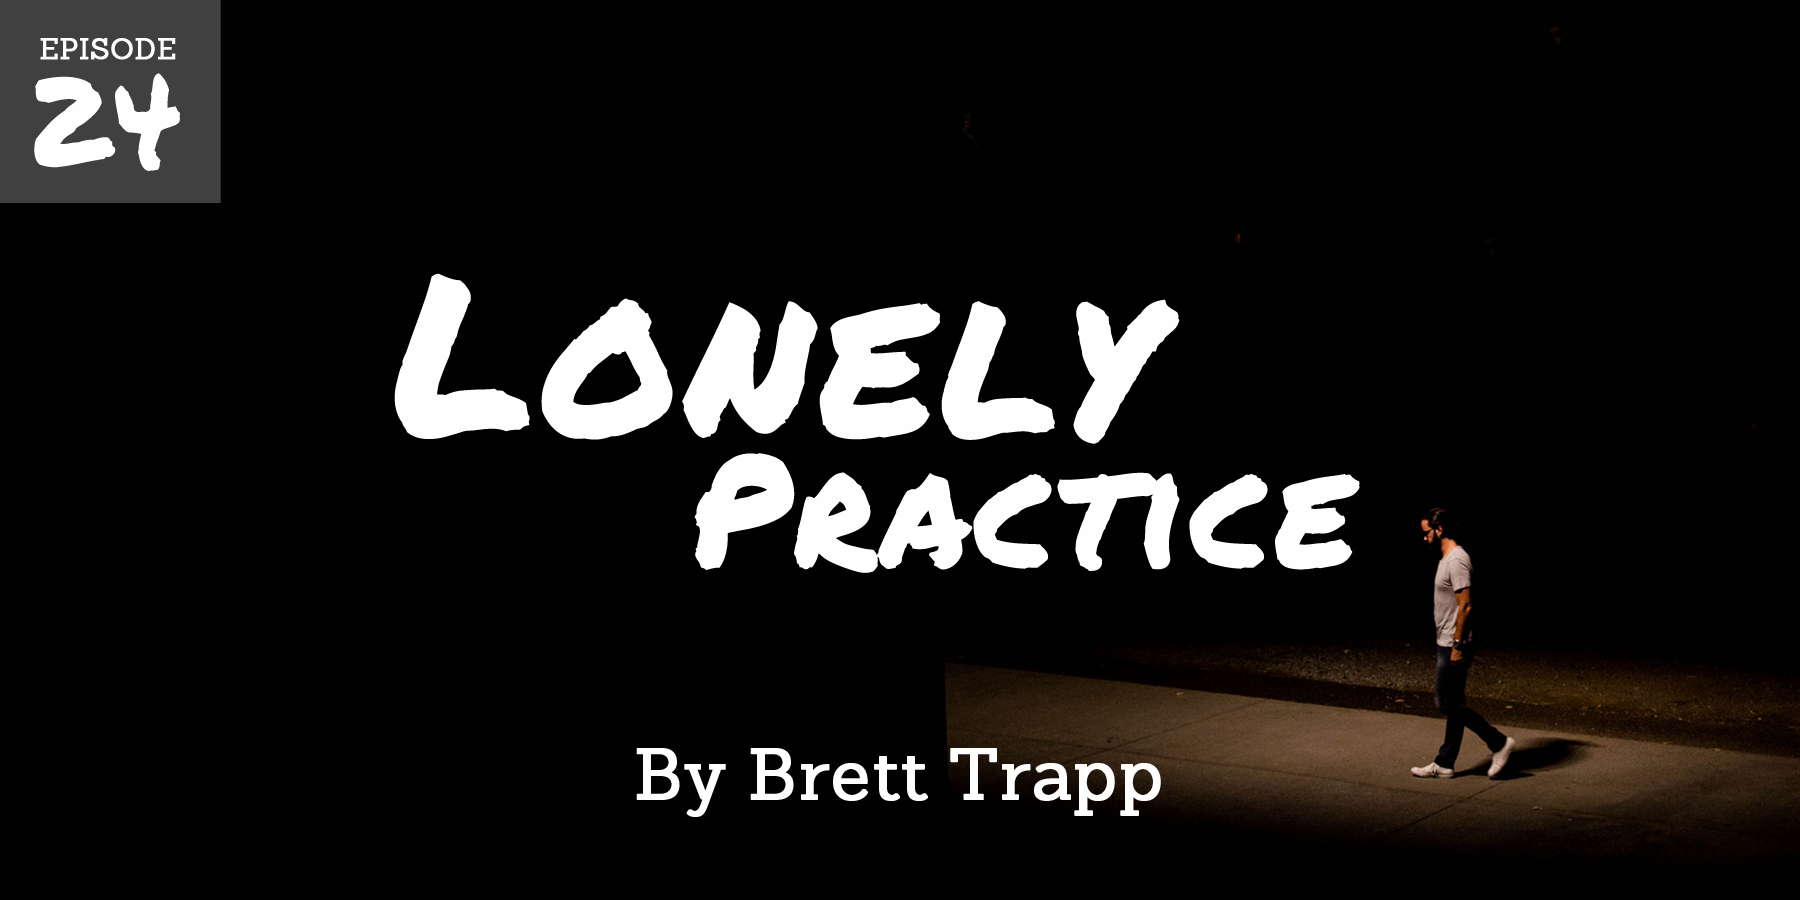 Practice for a lifetime of loneliness begins—at an isolated cabin in the mountains and at a football stadium surrounded by 100k people...